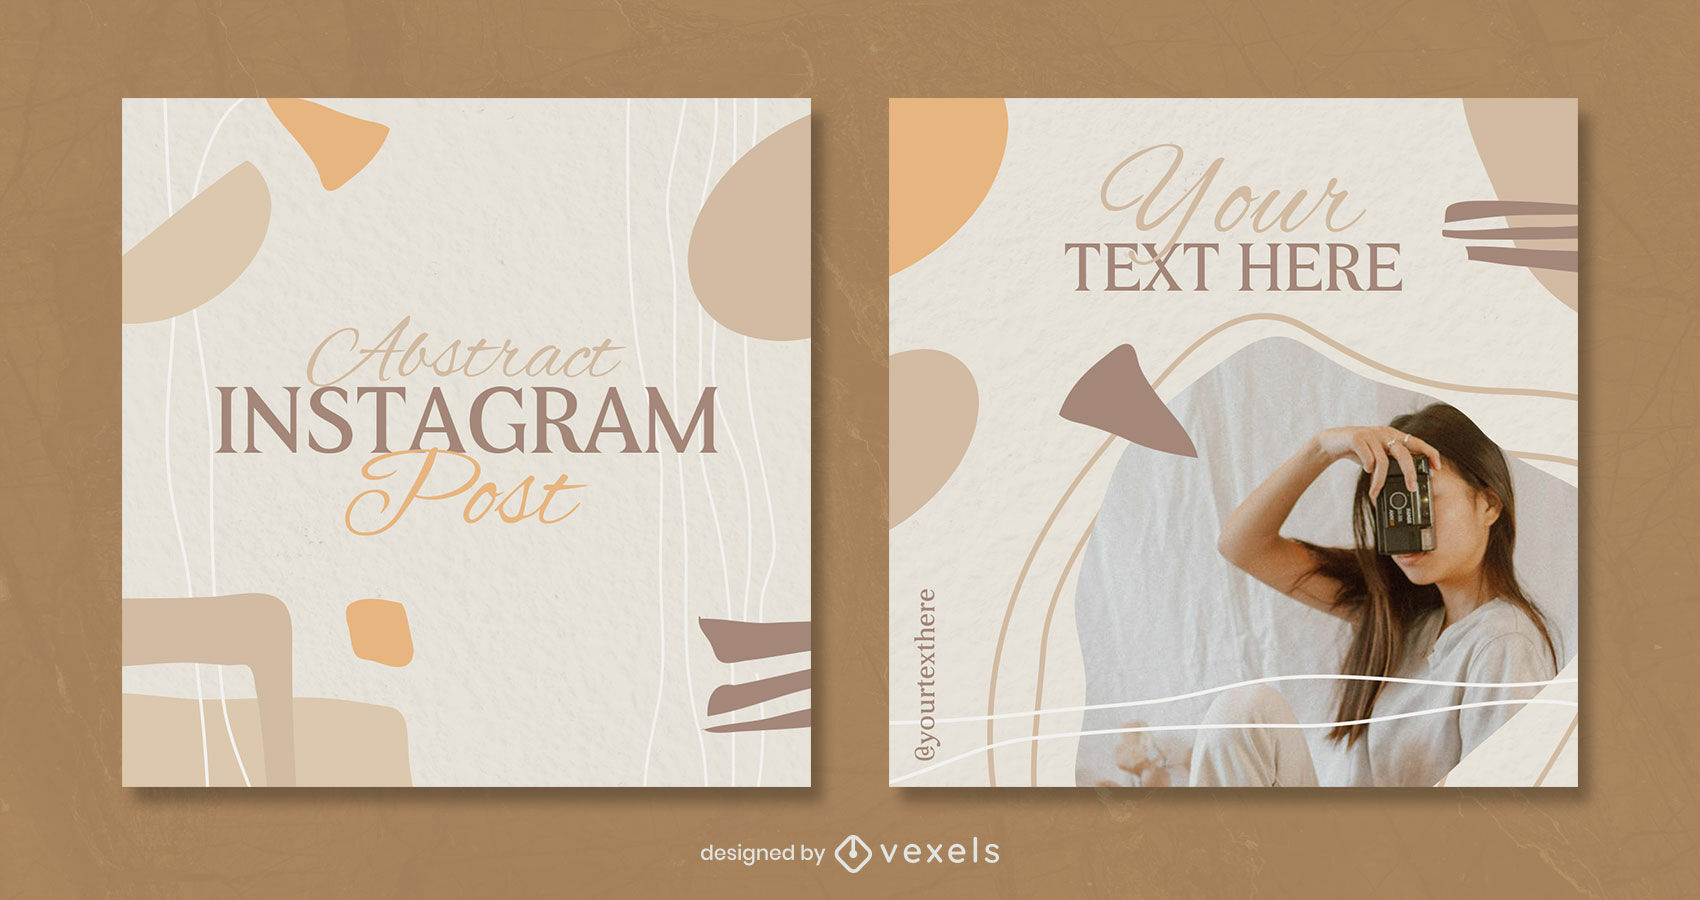 Abstract organic warm tones and shapes post template